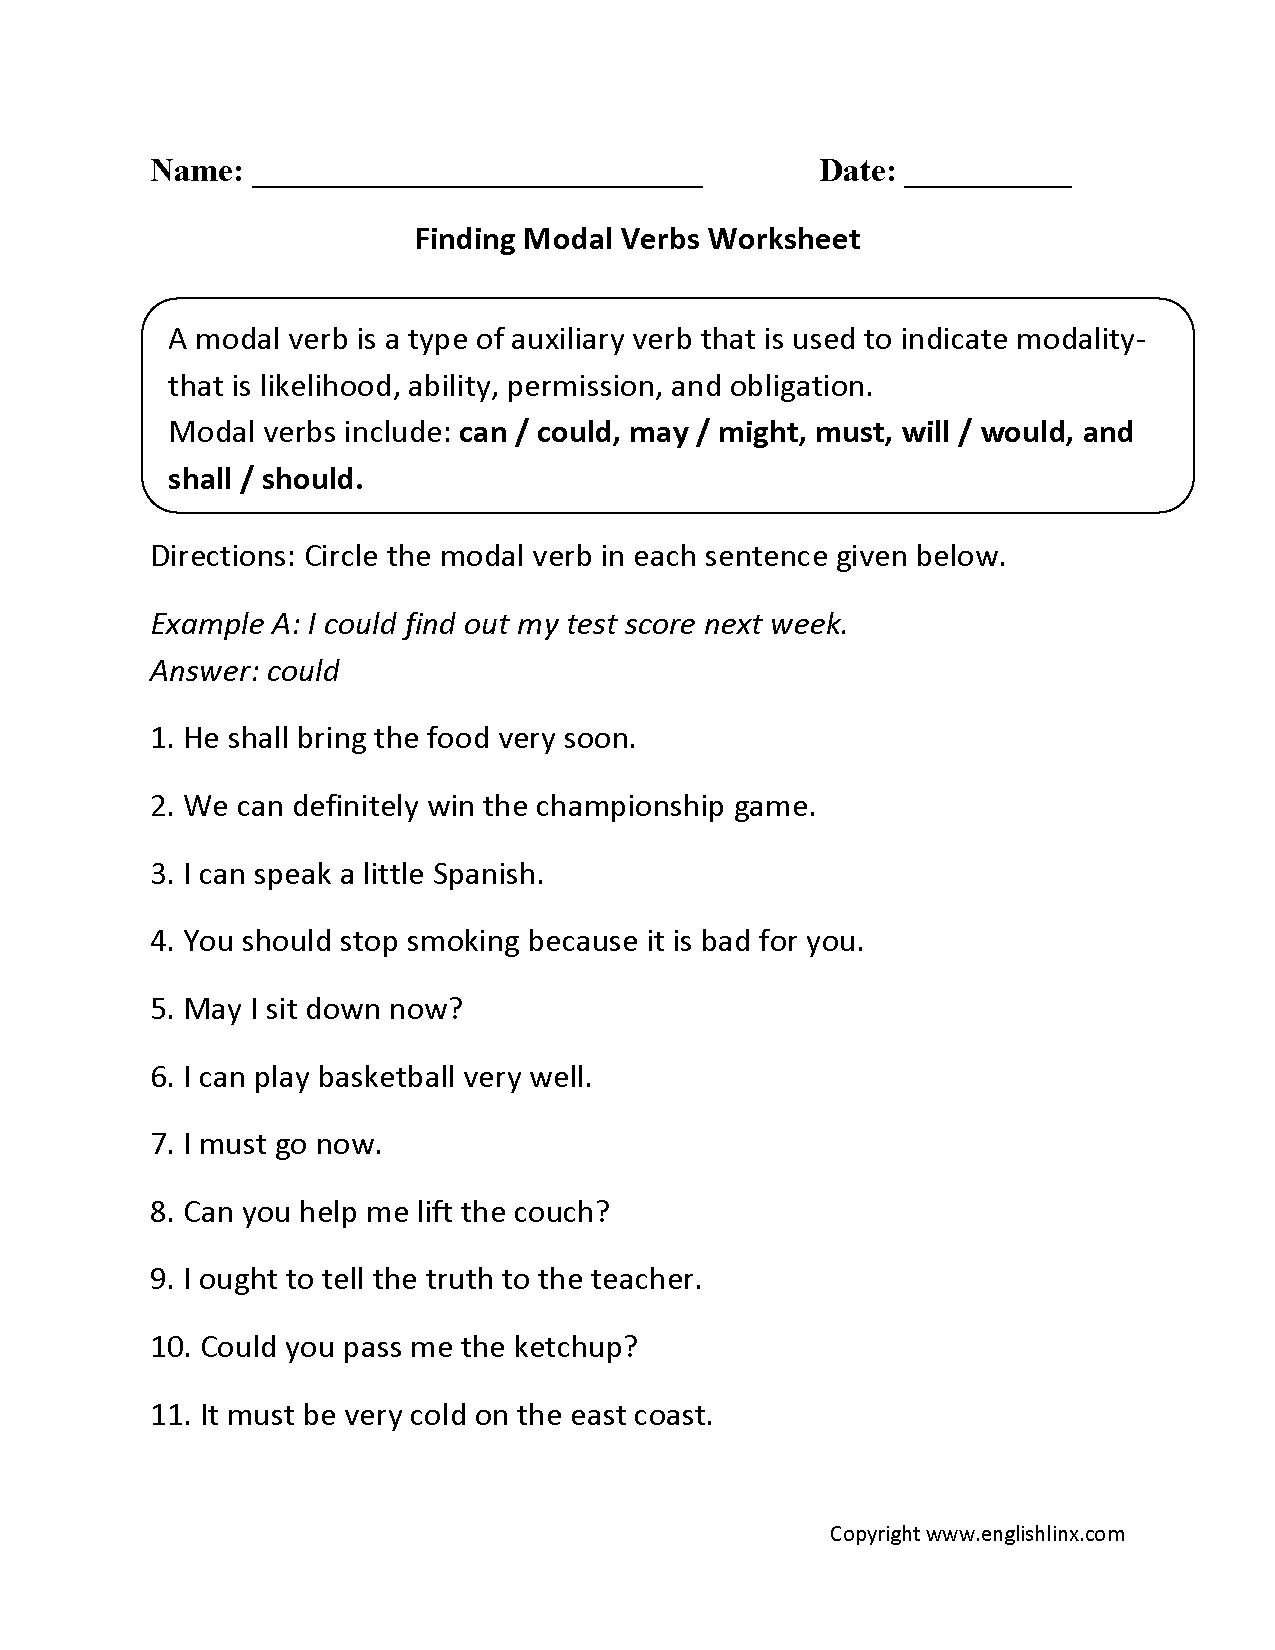 Finding Modal Verbs Worksheets